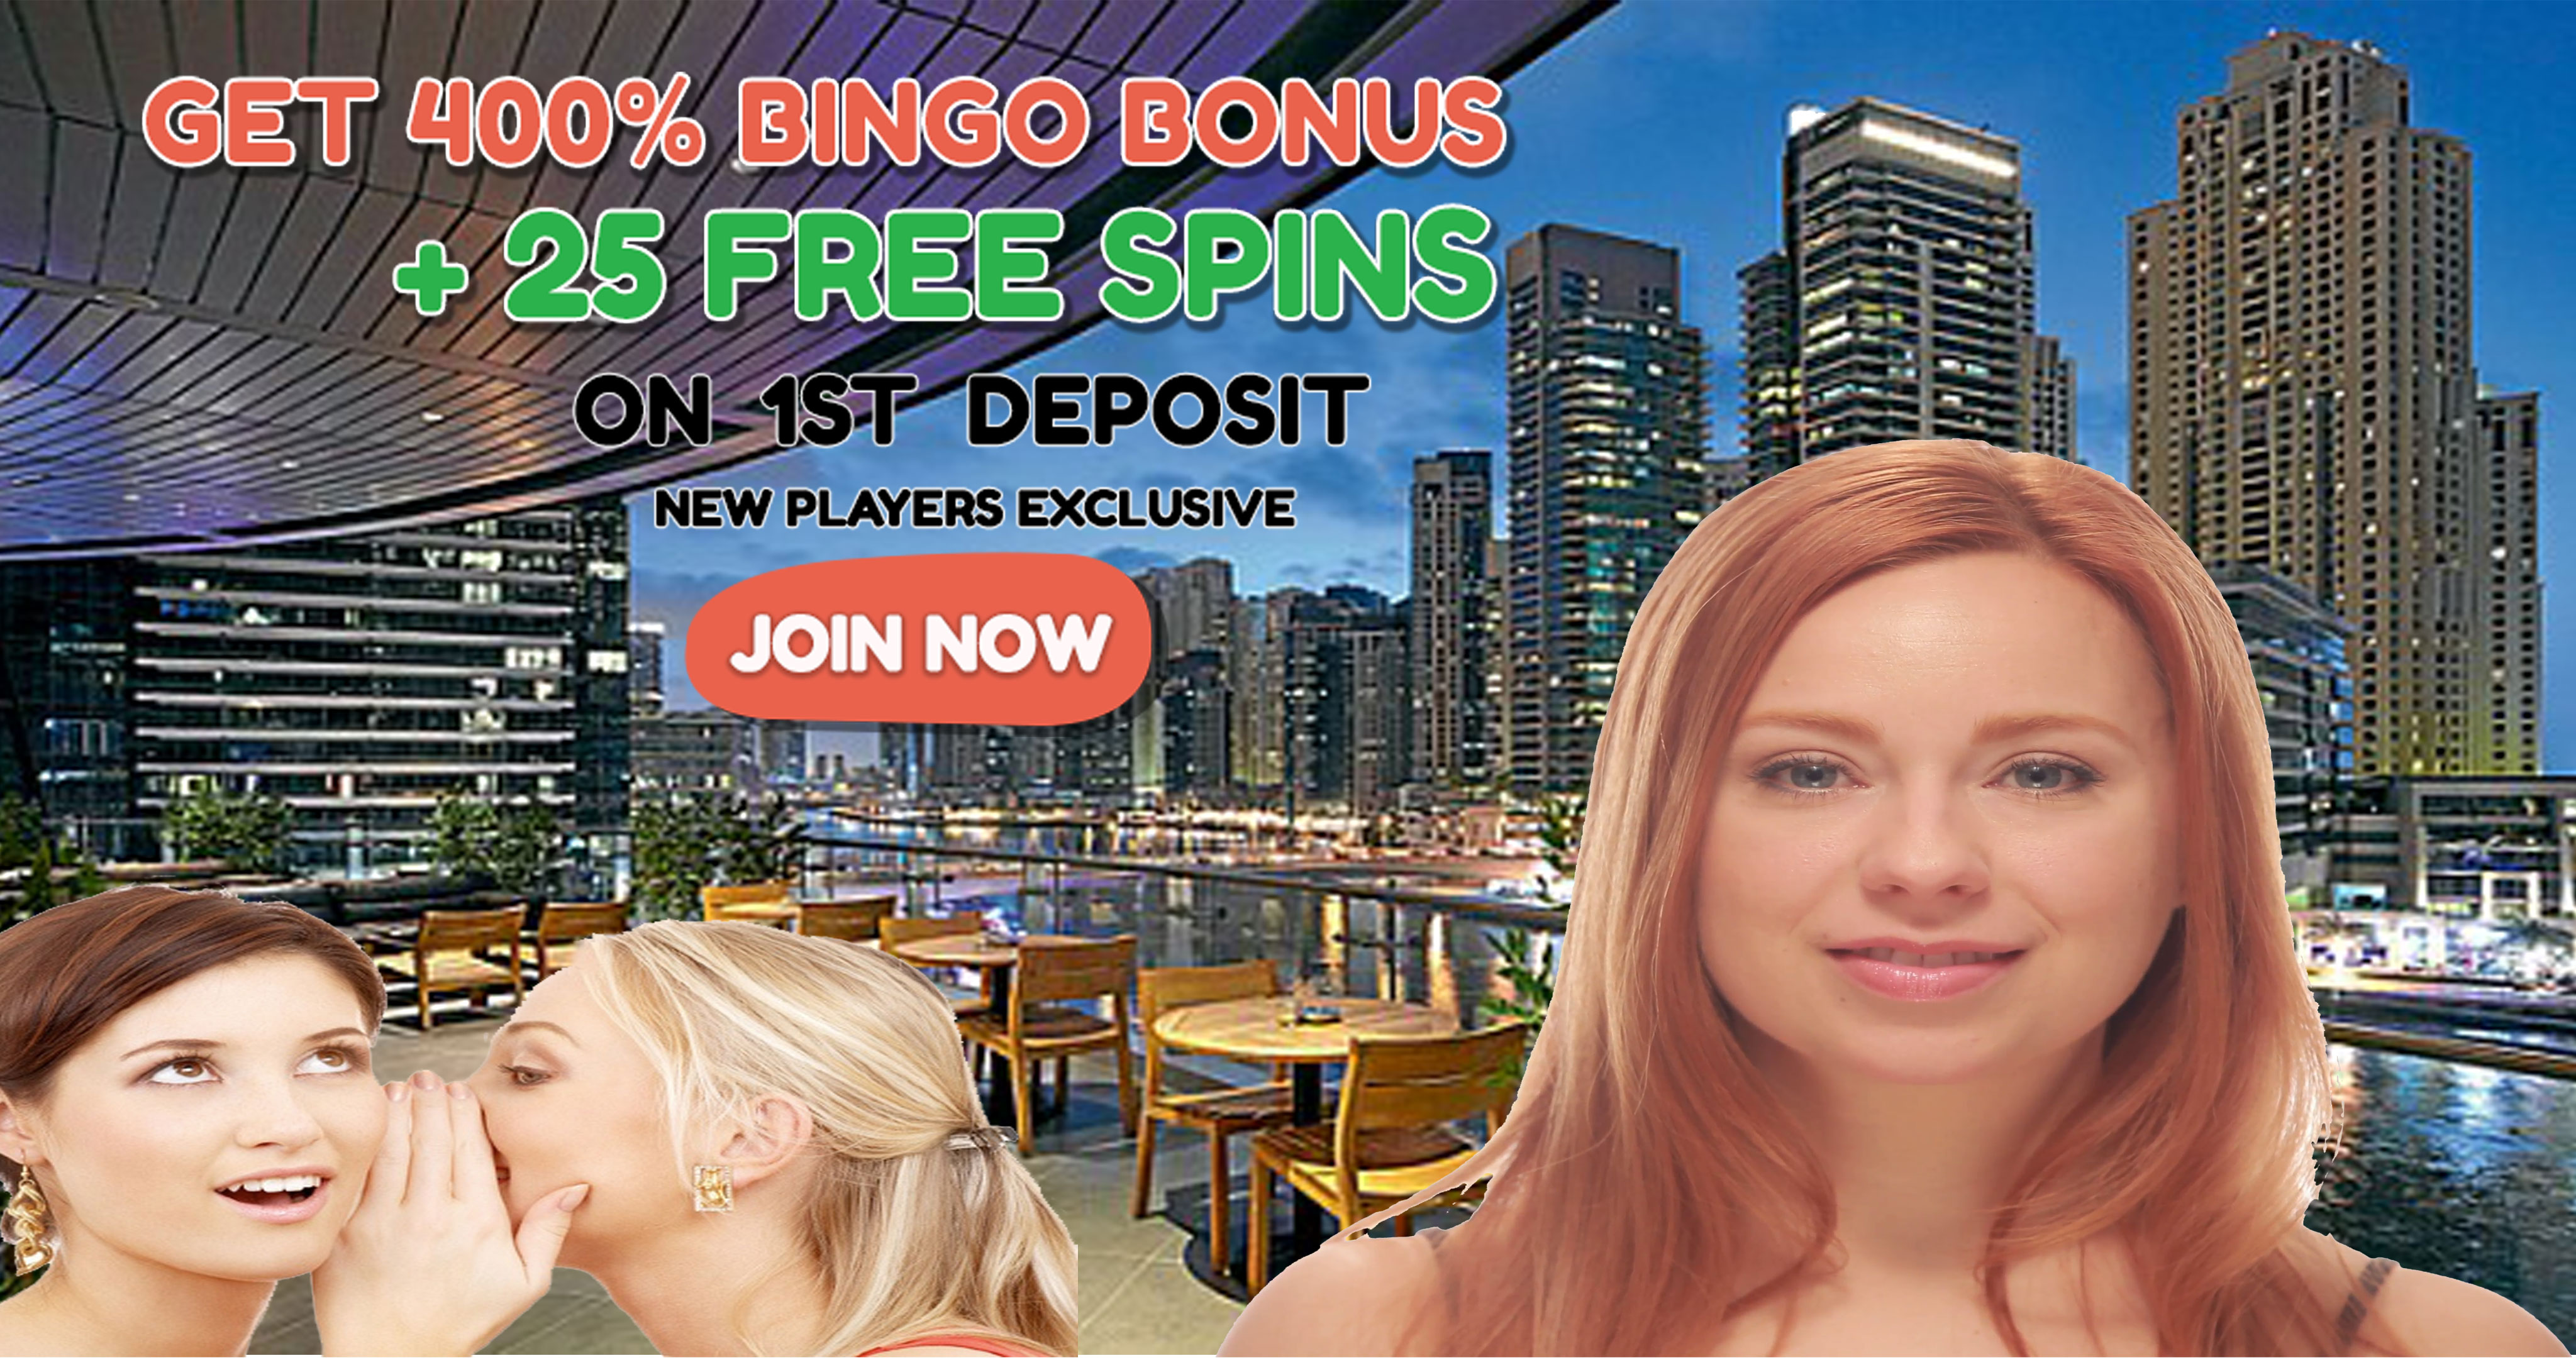 Best online bingo offers